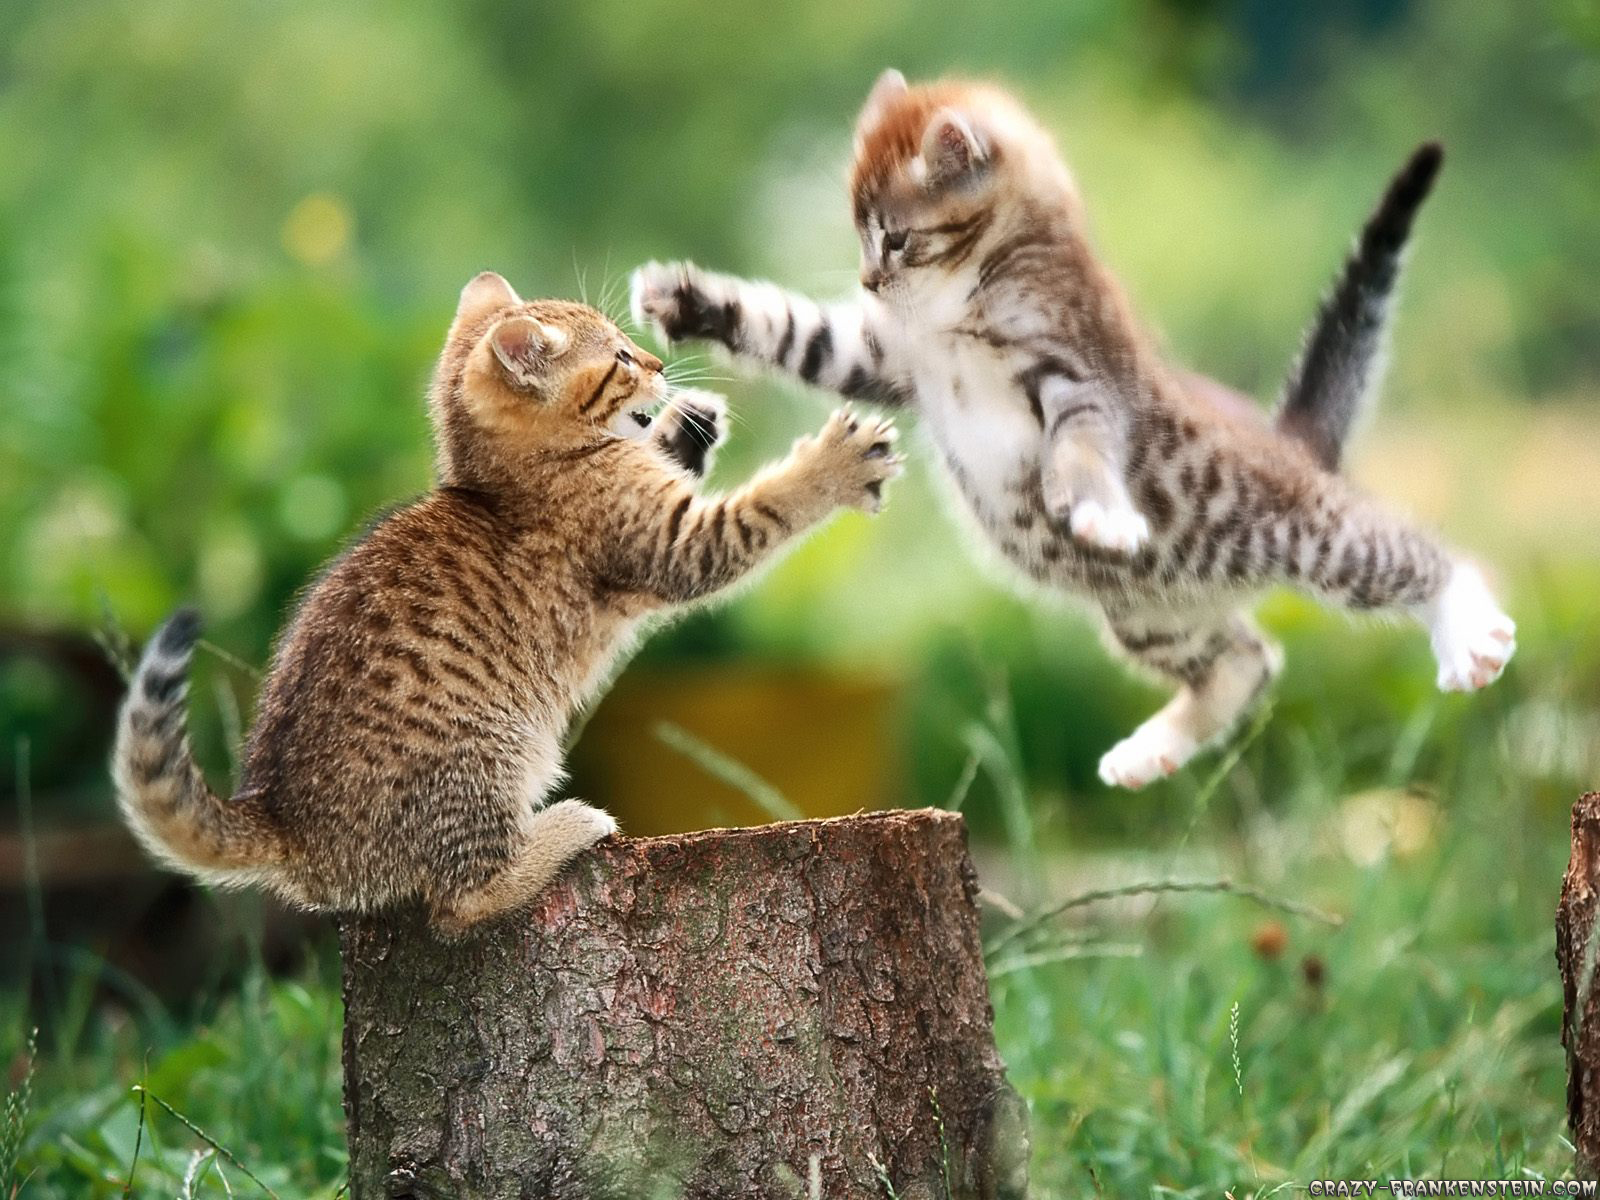 Wallpaper: Cat fight. Resolution: 1024x768 | 1600x1200